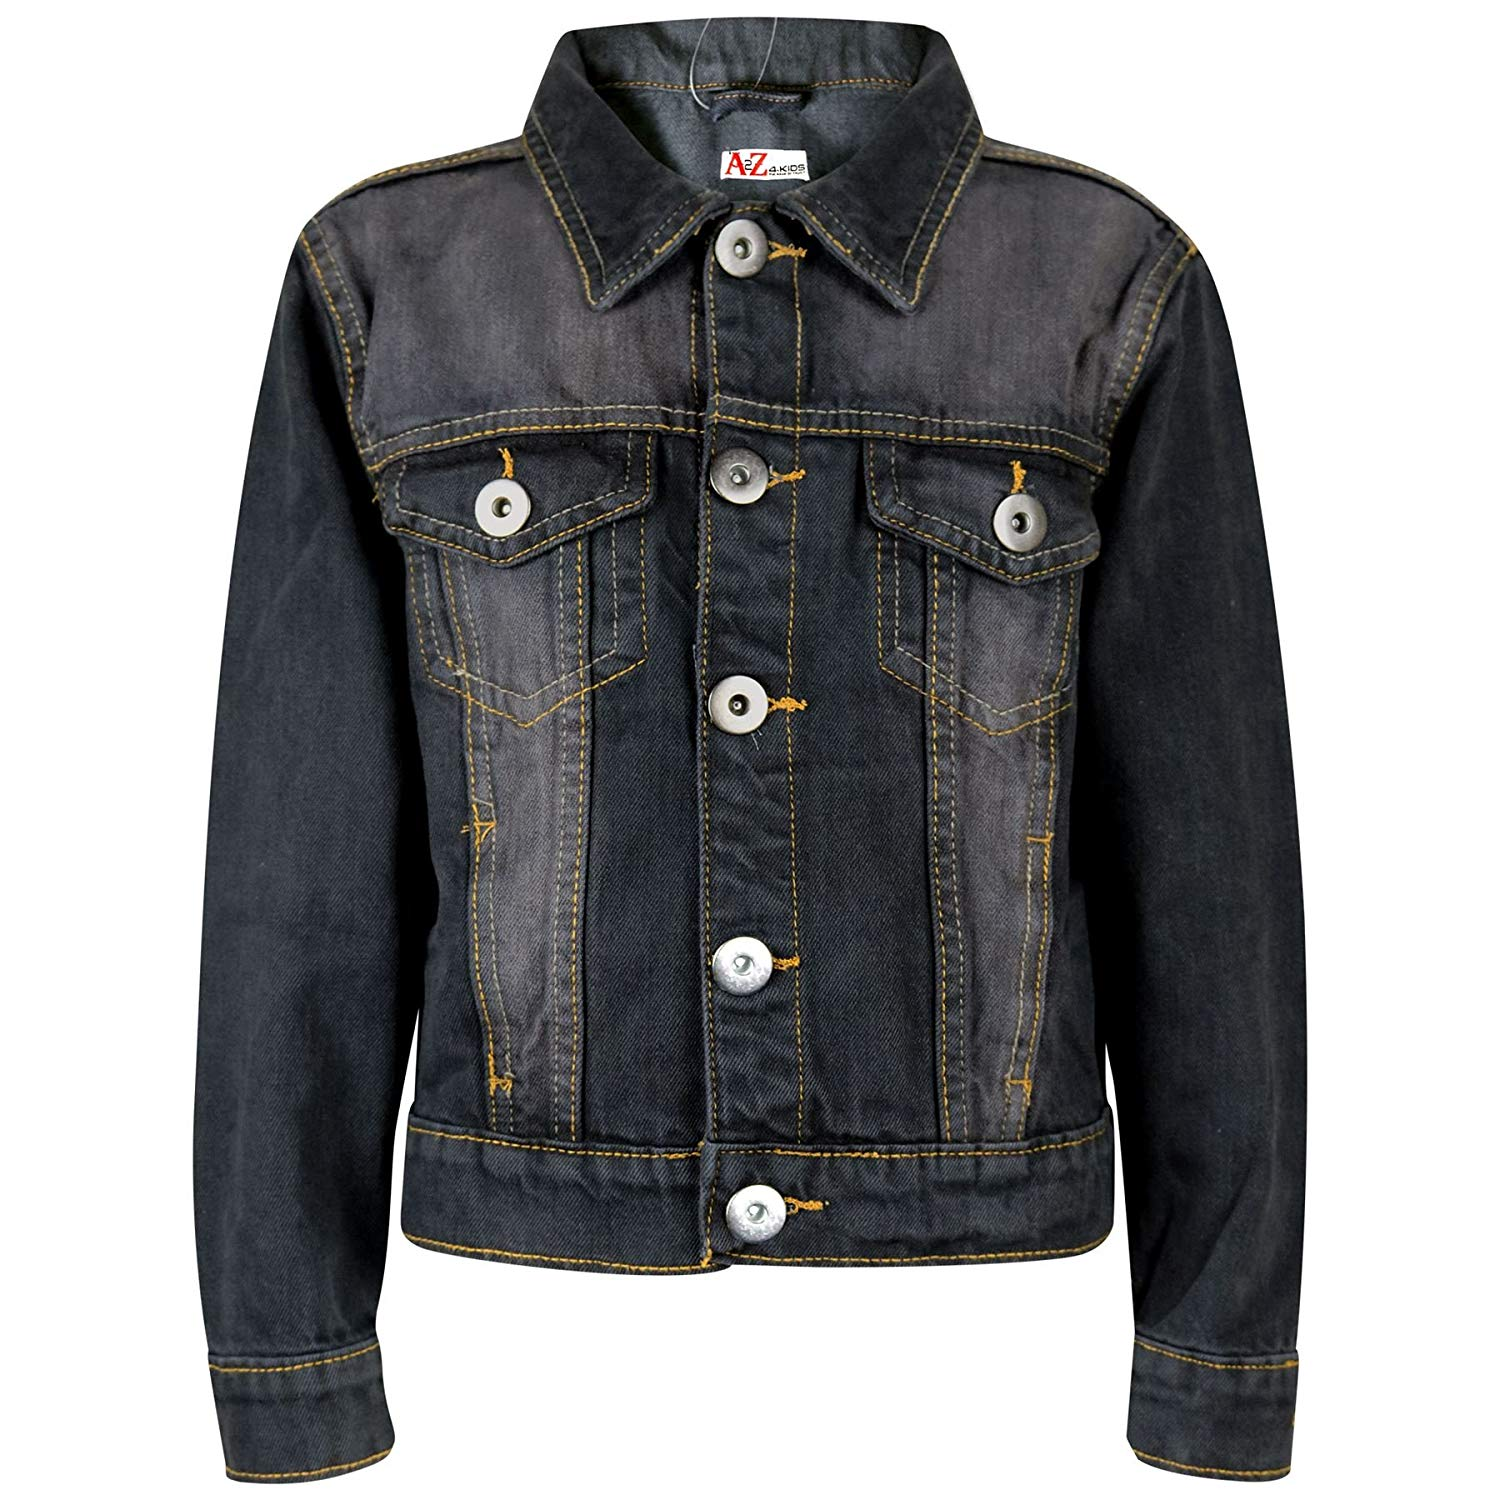 b9493f804fc Get Quotations · Kids Boys Denim Jackets Designer Black Jeans Jacket  Fashion Coat New Age 3-13 Yr